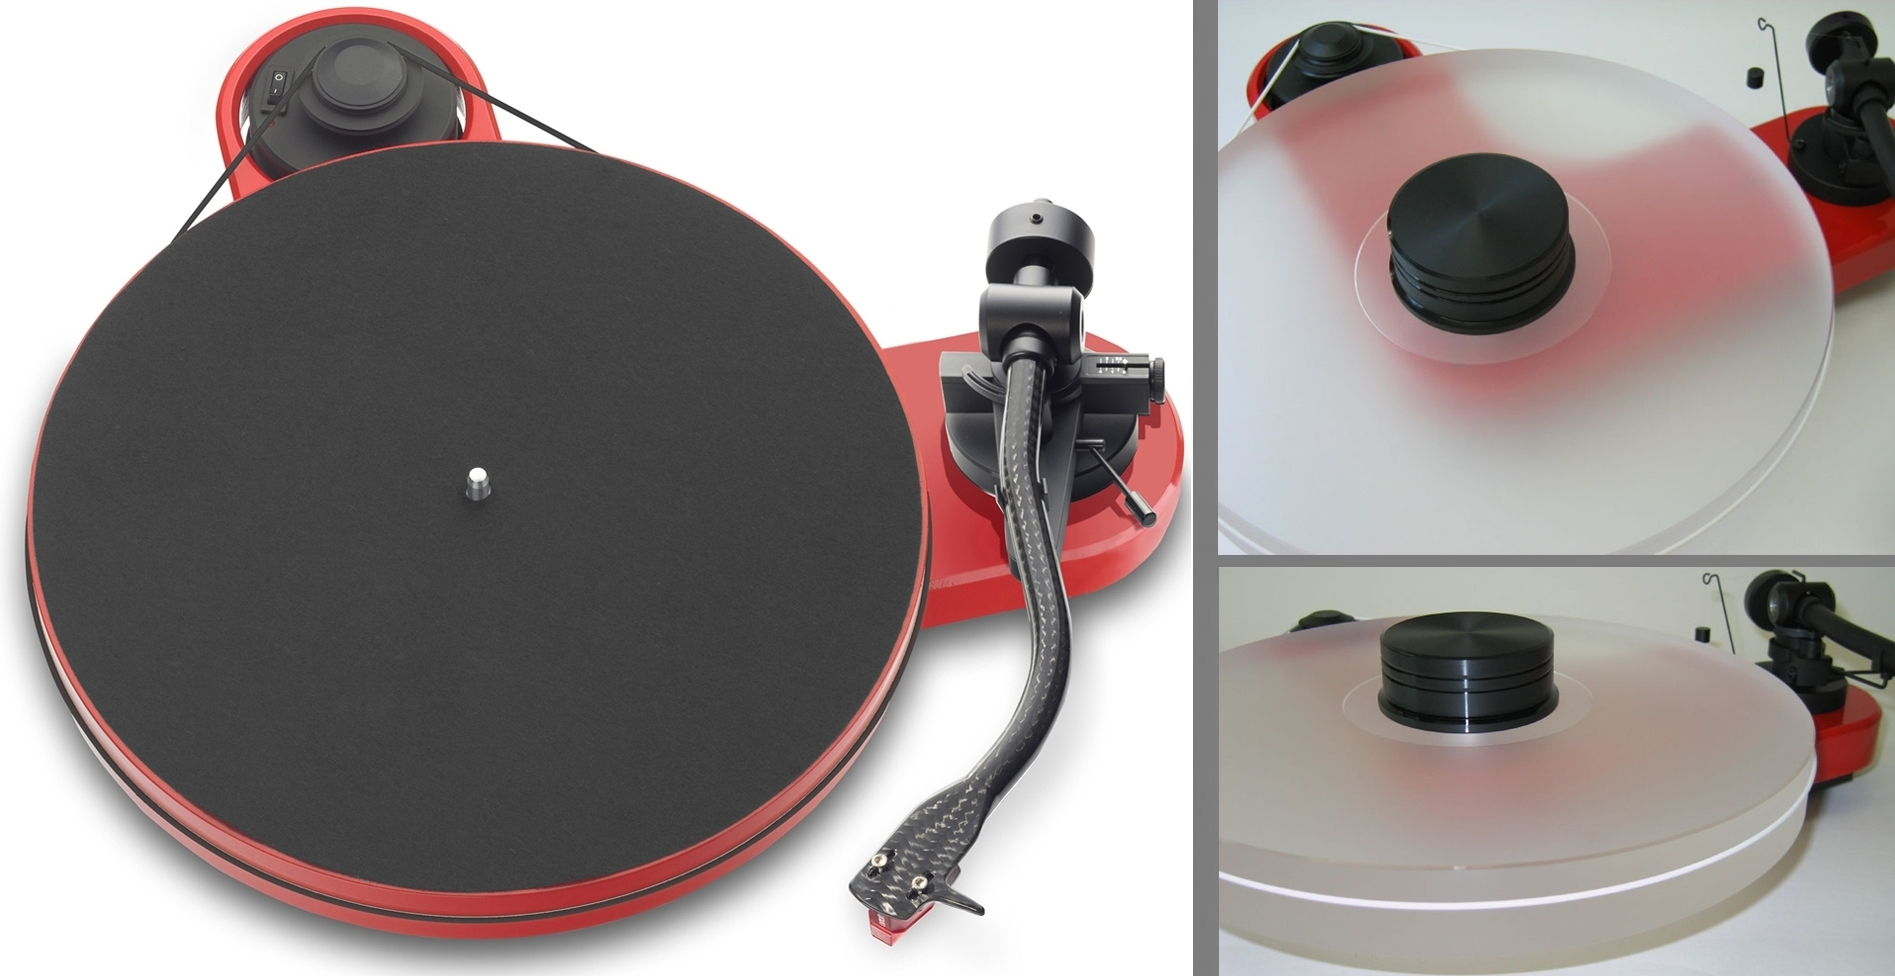 PRO-JECT RPM 1 CARBON turntable + DELTA DEVICE UPGRADE | chassis: red